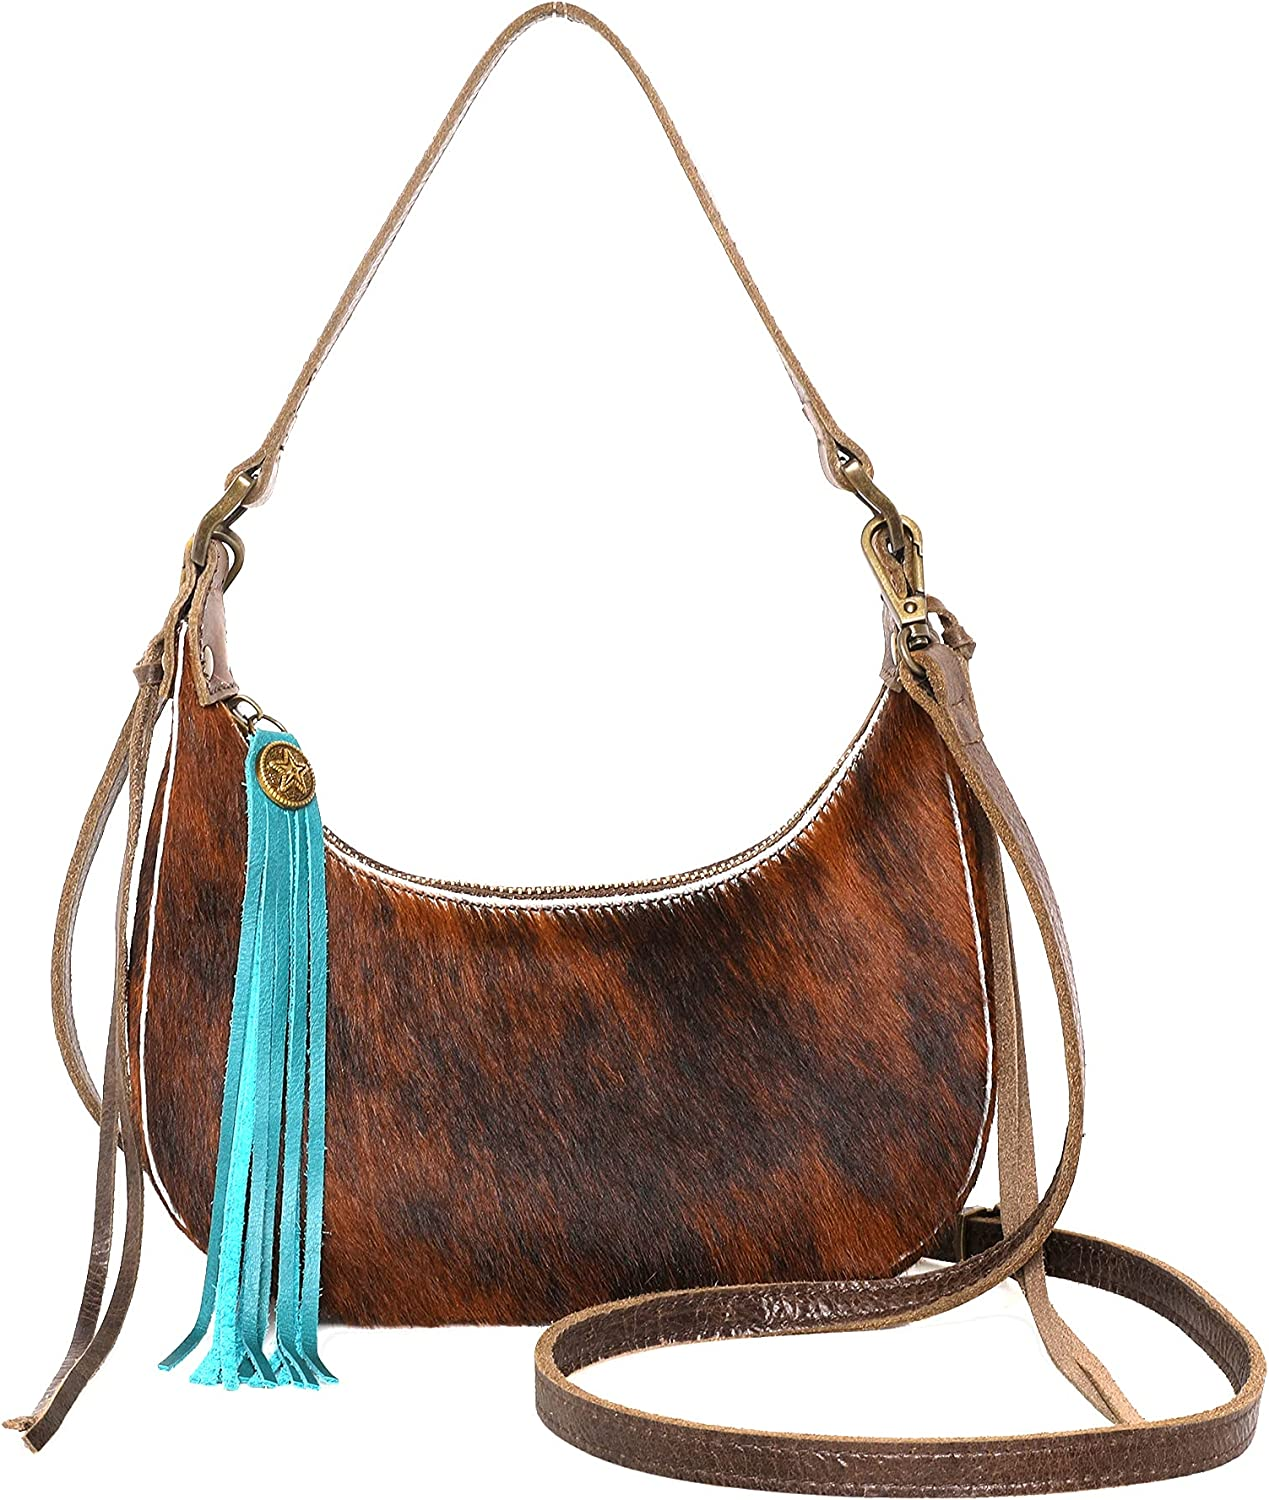 Women Free shipping on posting reviews Small Clutch Purse Western Cowhide Cowgir Hair Limited price sale Handbags